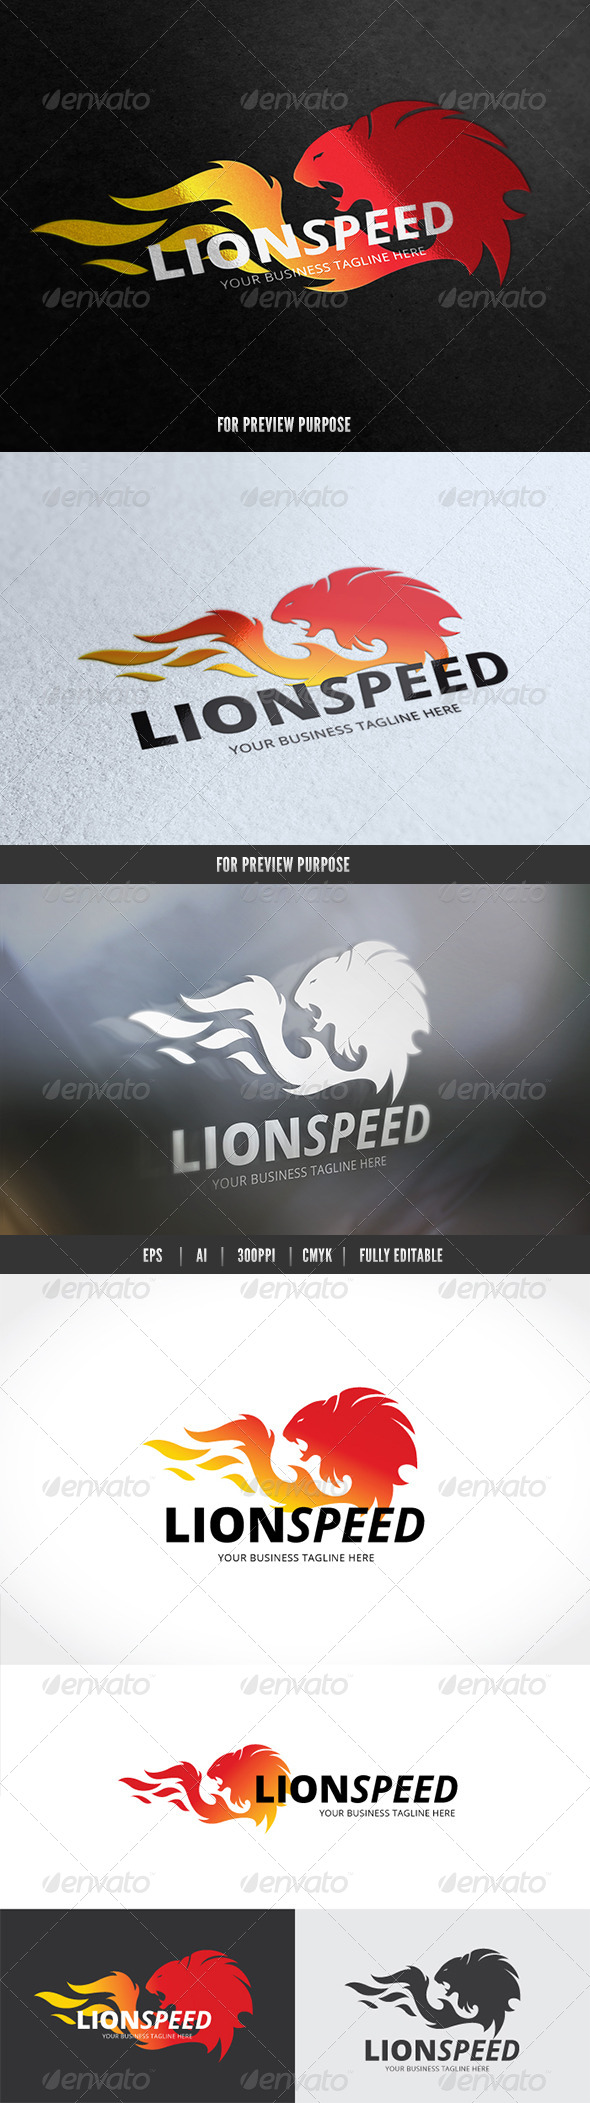 GraphicRiver Lion Speed 7525151